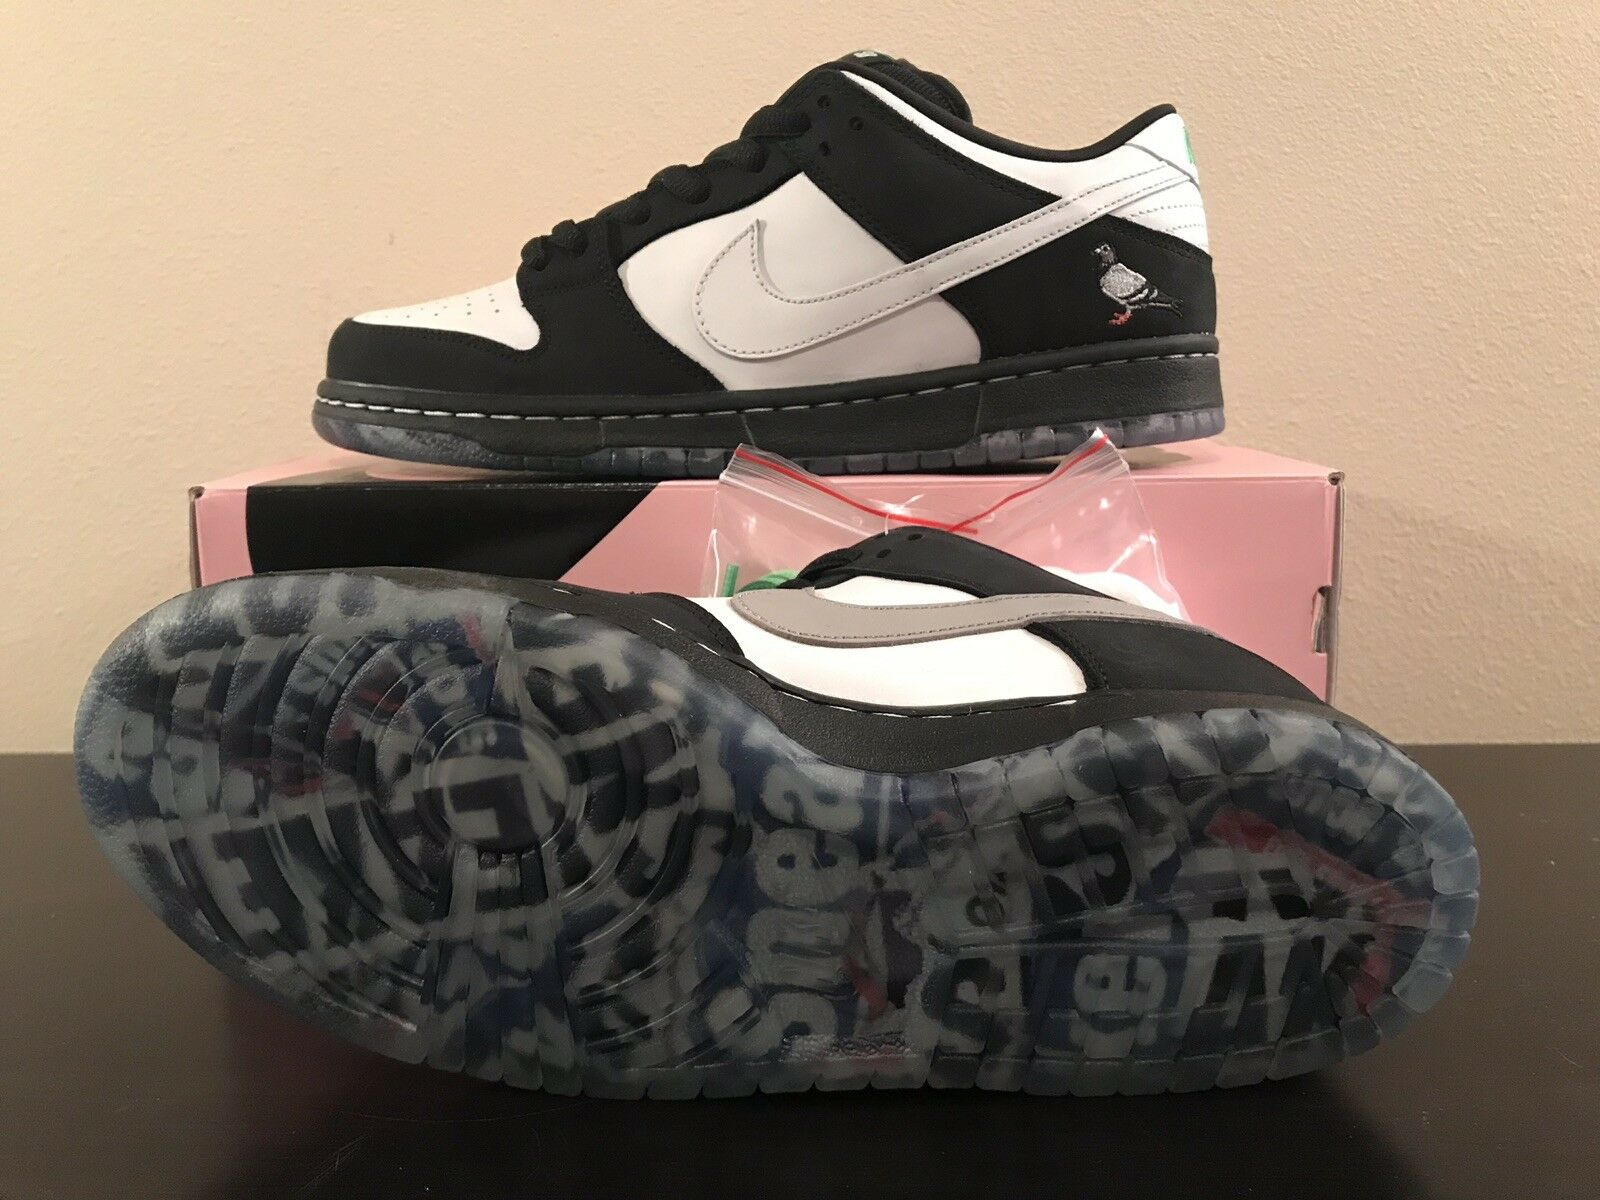 Nike SB Dunk Low Staple Panda Pigeon BV1310-013 Size 10.5 w  receipt